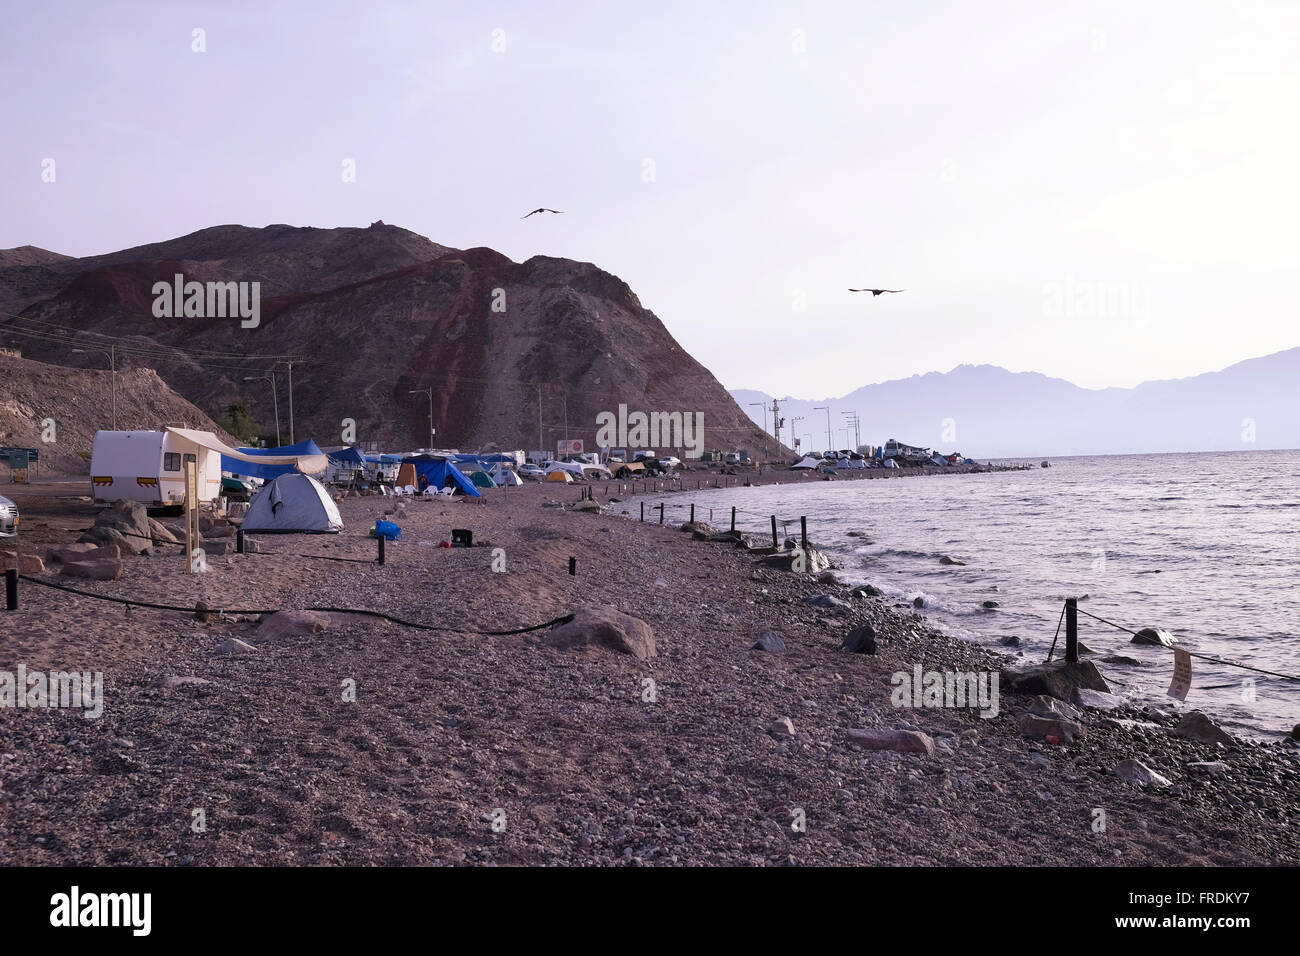 A campsite at the southern shore of the city of Eilat located at the northern tip of the Red Sea Israel - Stock Image